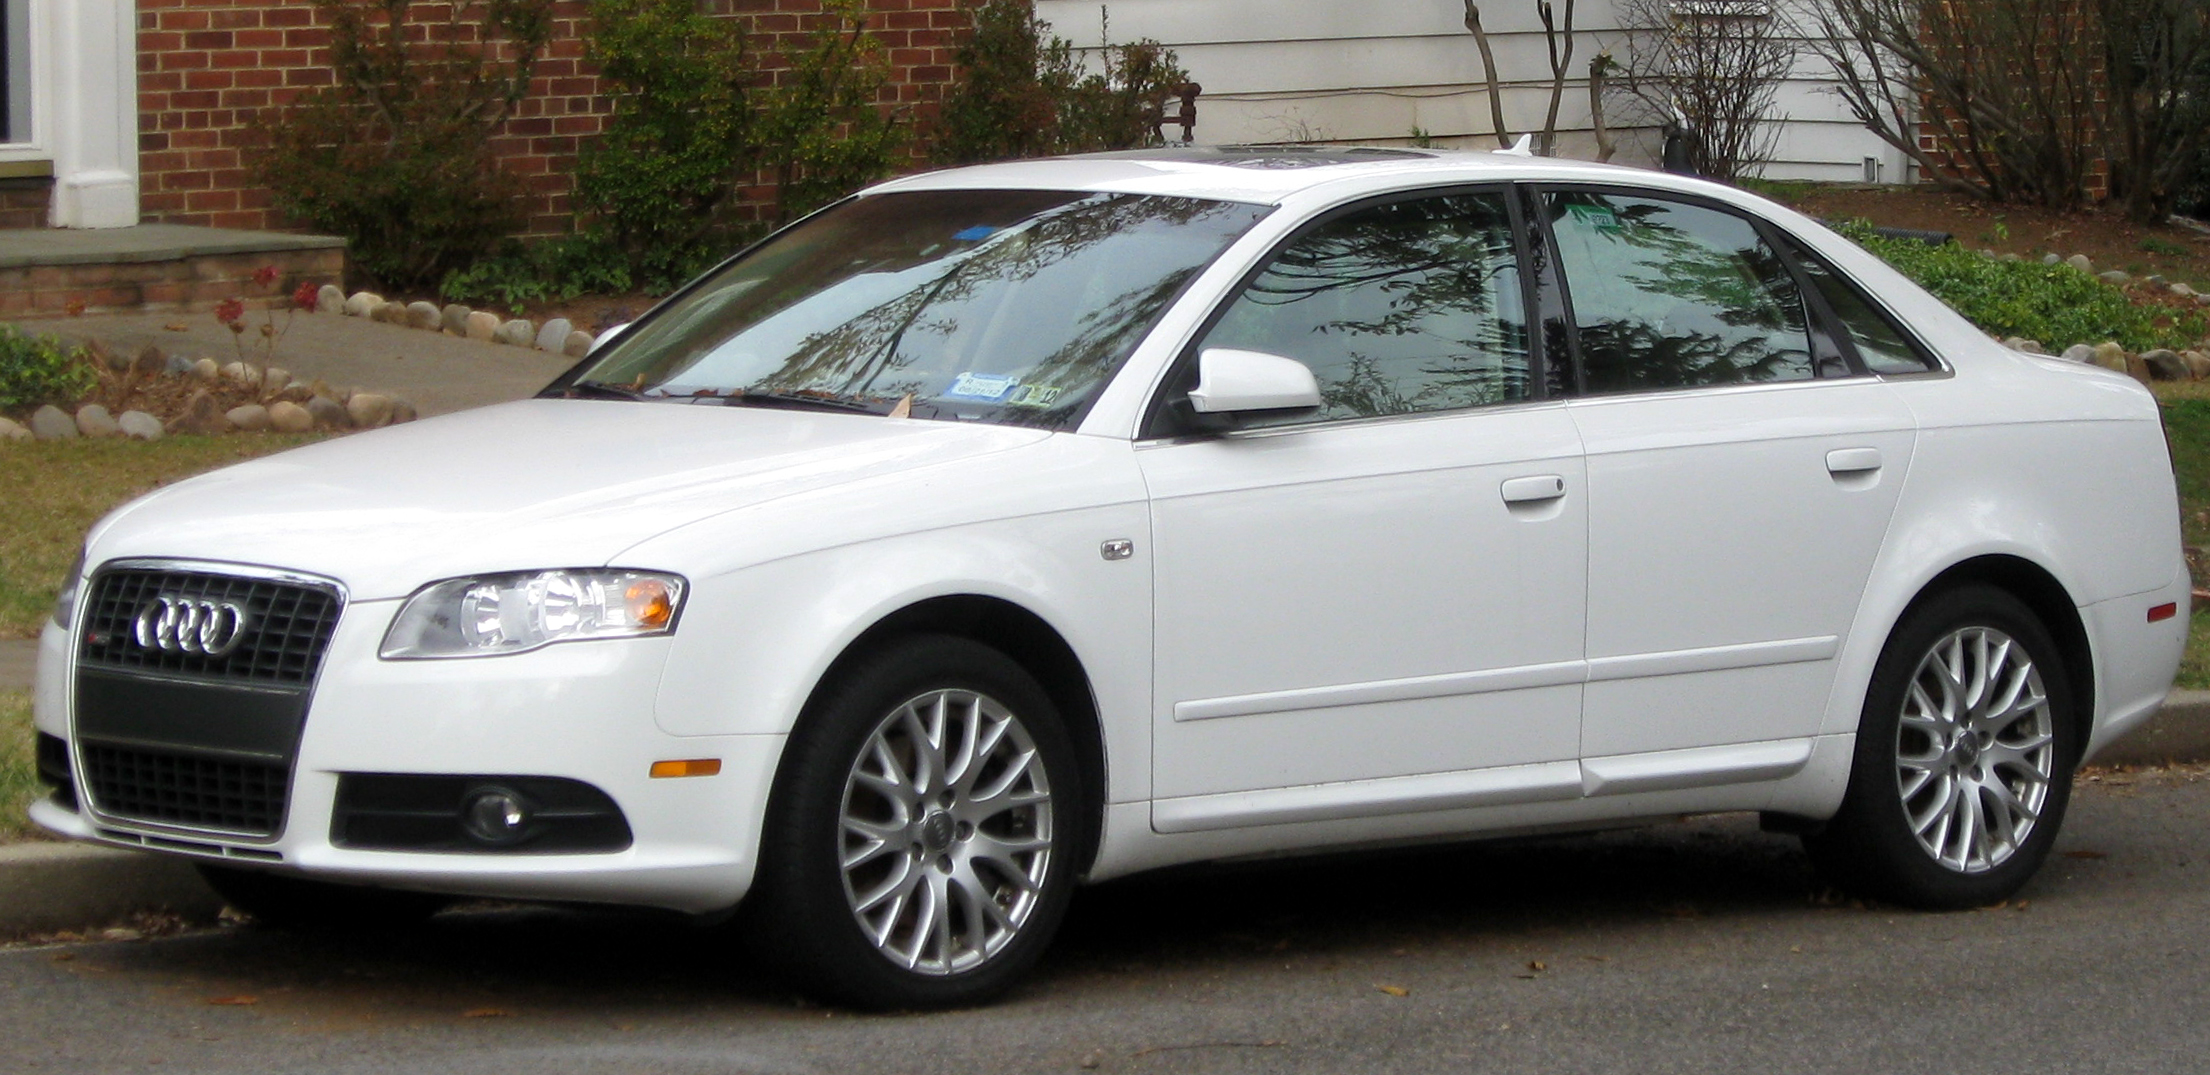 File audi a4 b7 sedan 11 26 2011 jpg wikimedia commons